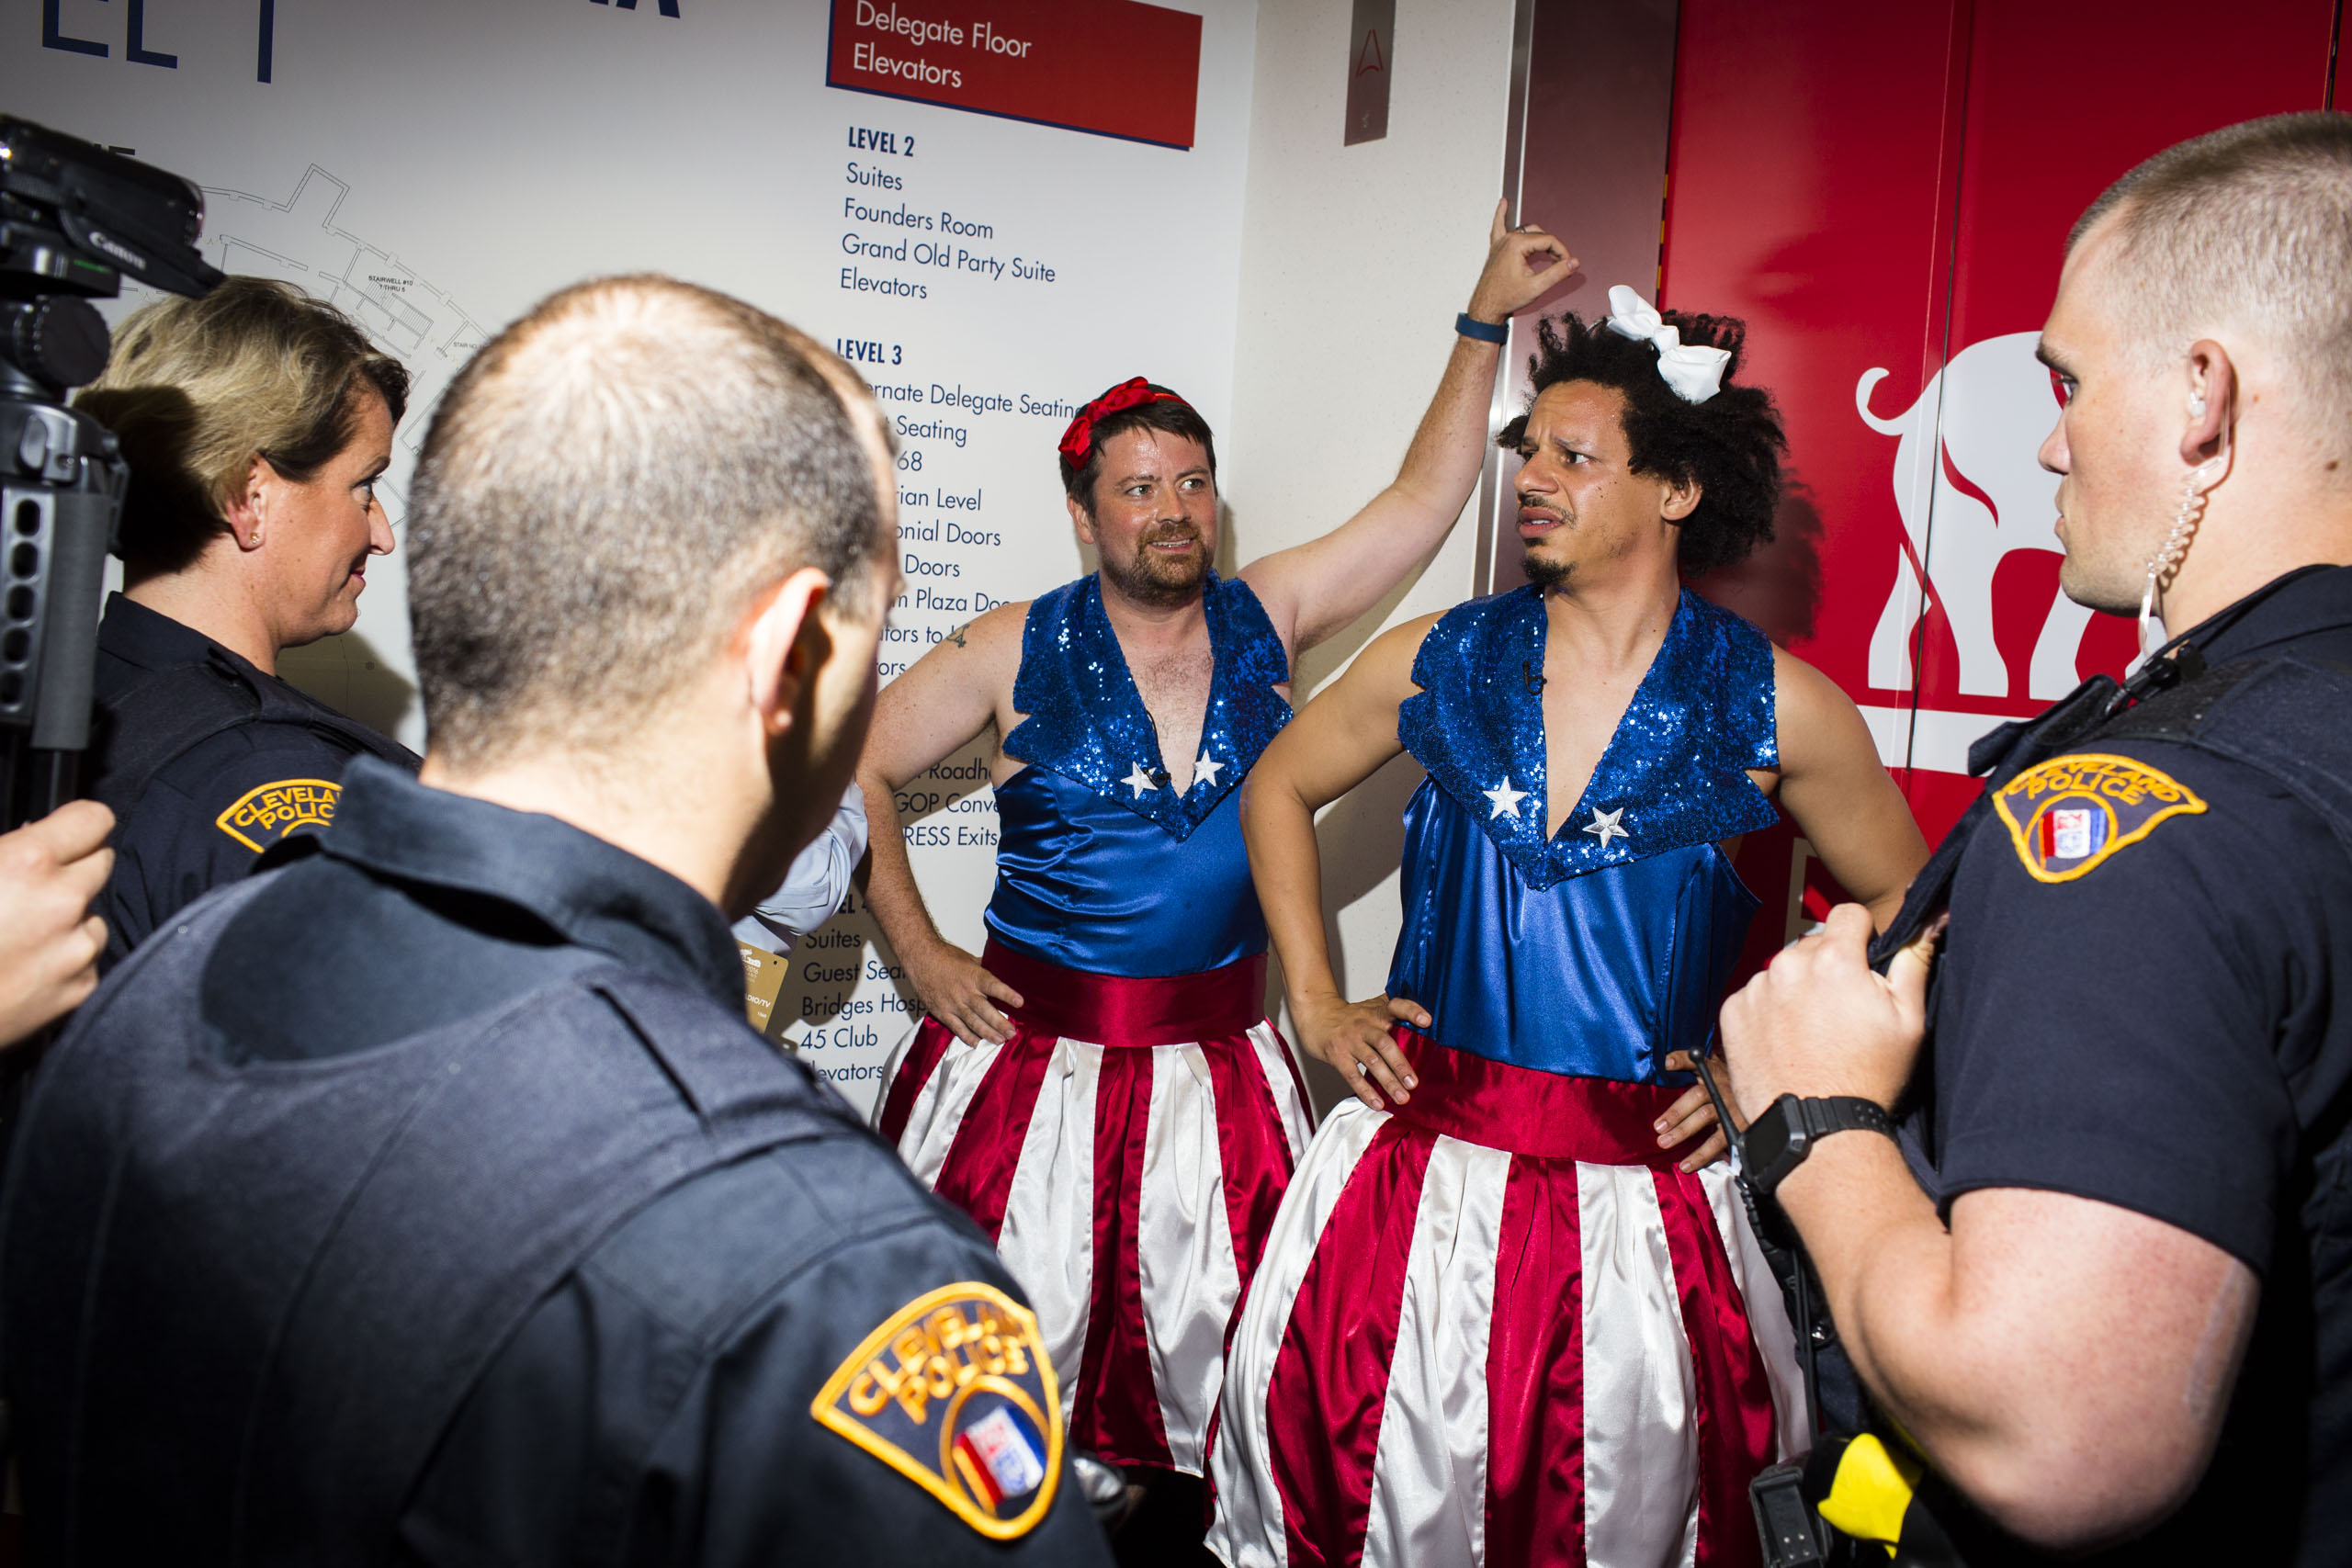 Comedian Eric Andre is escorted from the 2016 Republican National Convention in Cleveland on Tuesday, July 19, 2016.